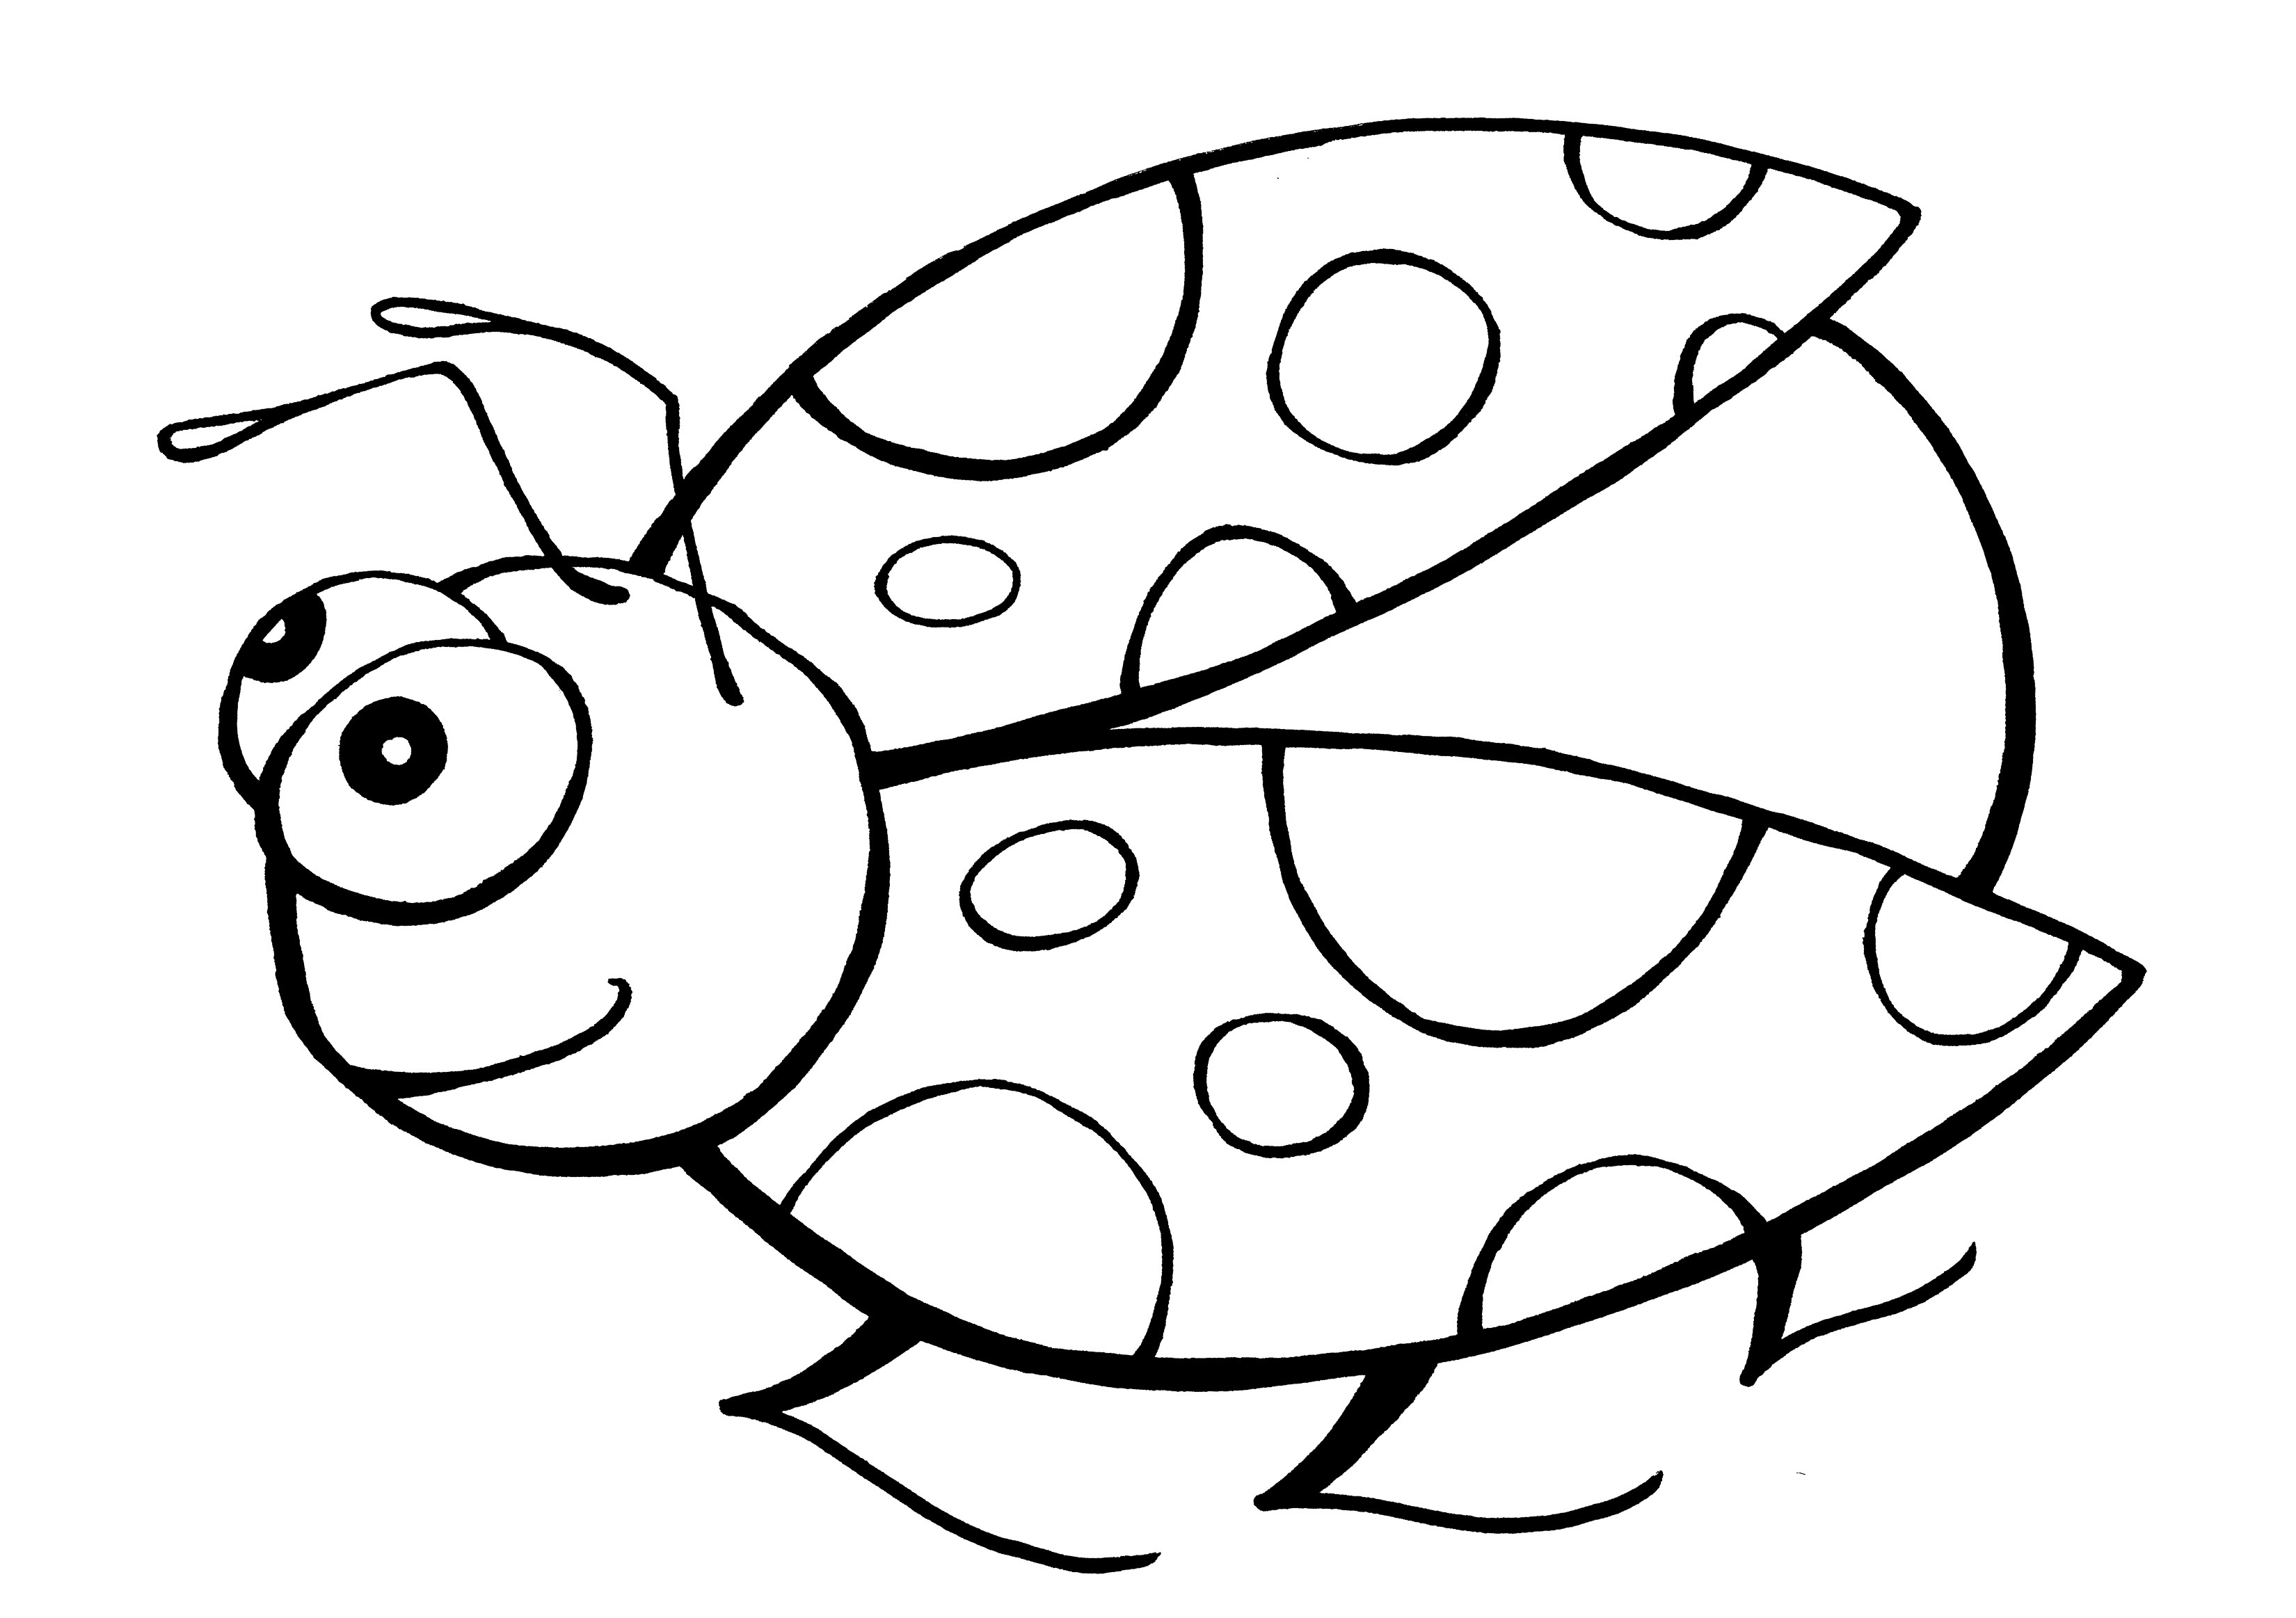 printable bug coloring pages bug coloring pages kidsuki bug coloring printable pages